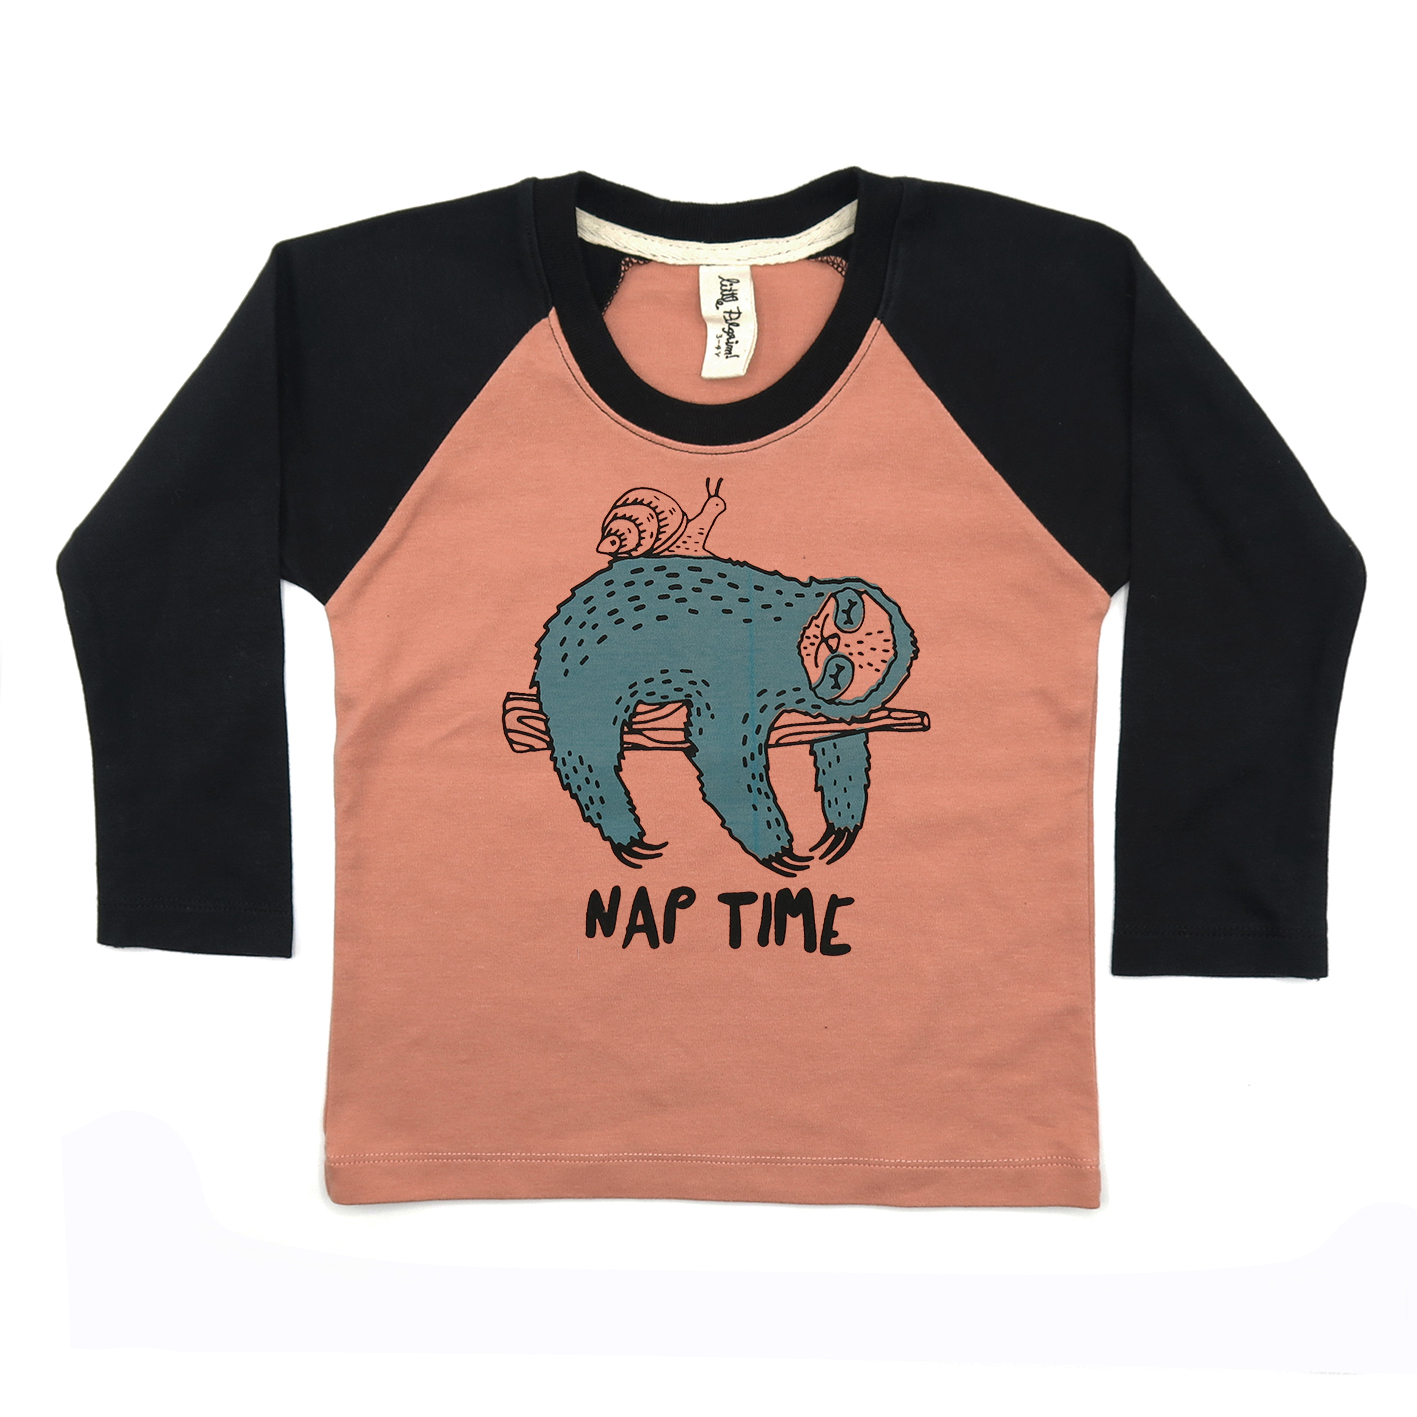 BABY/ KIDS / WOMEN / MEN LP0349 NAP TIME RAGLAN LONG SLEEVE